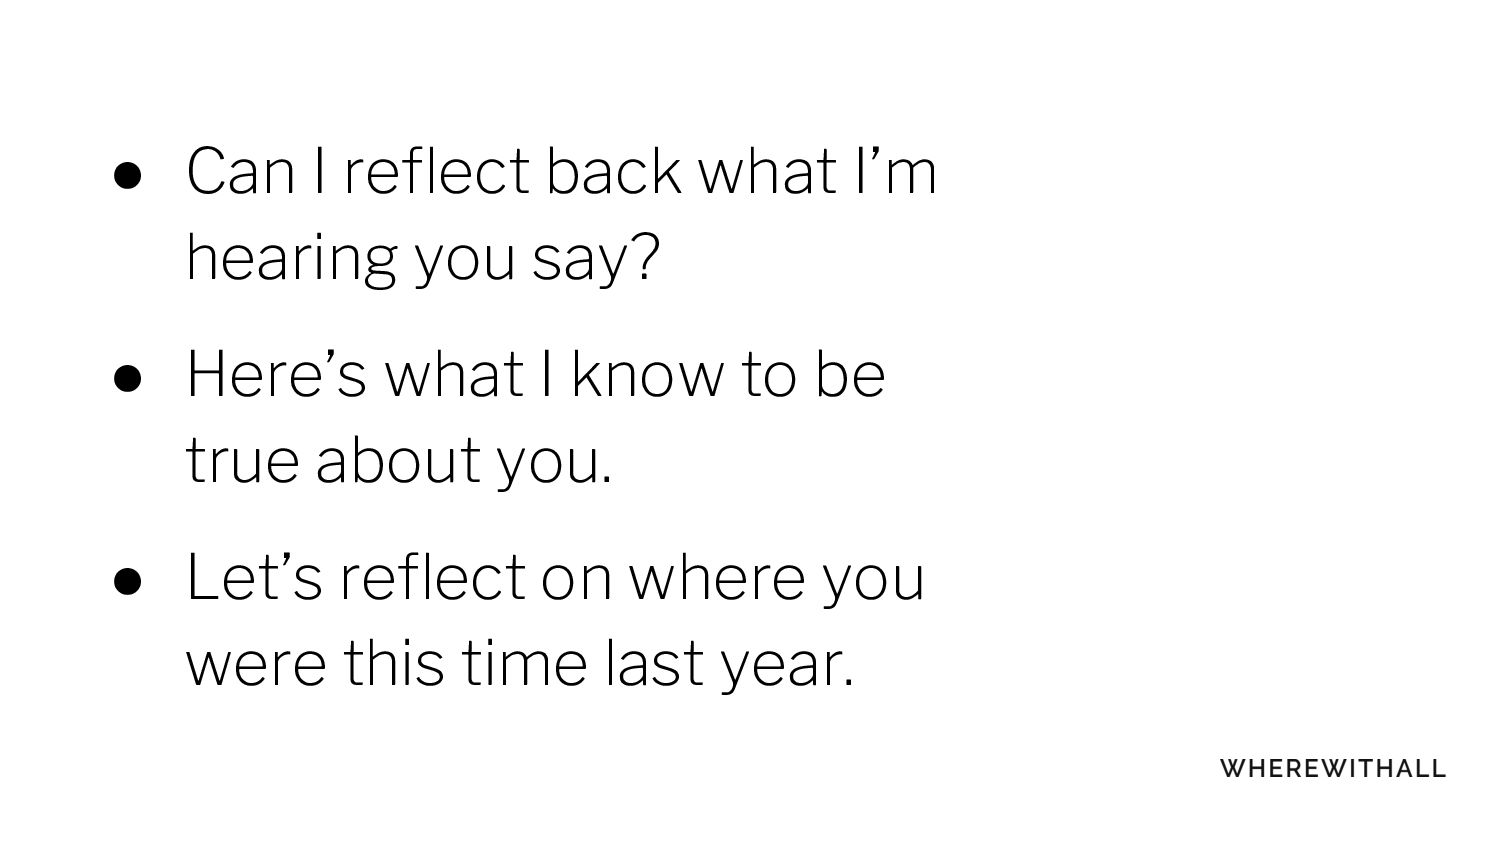 ● Can I reflect back what I'm hearing you say? ...